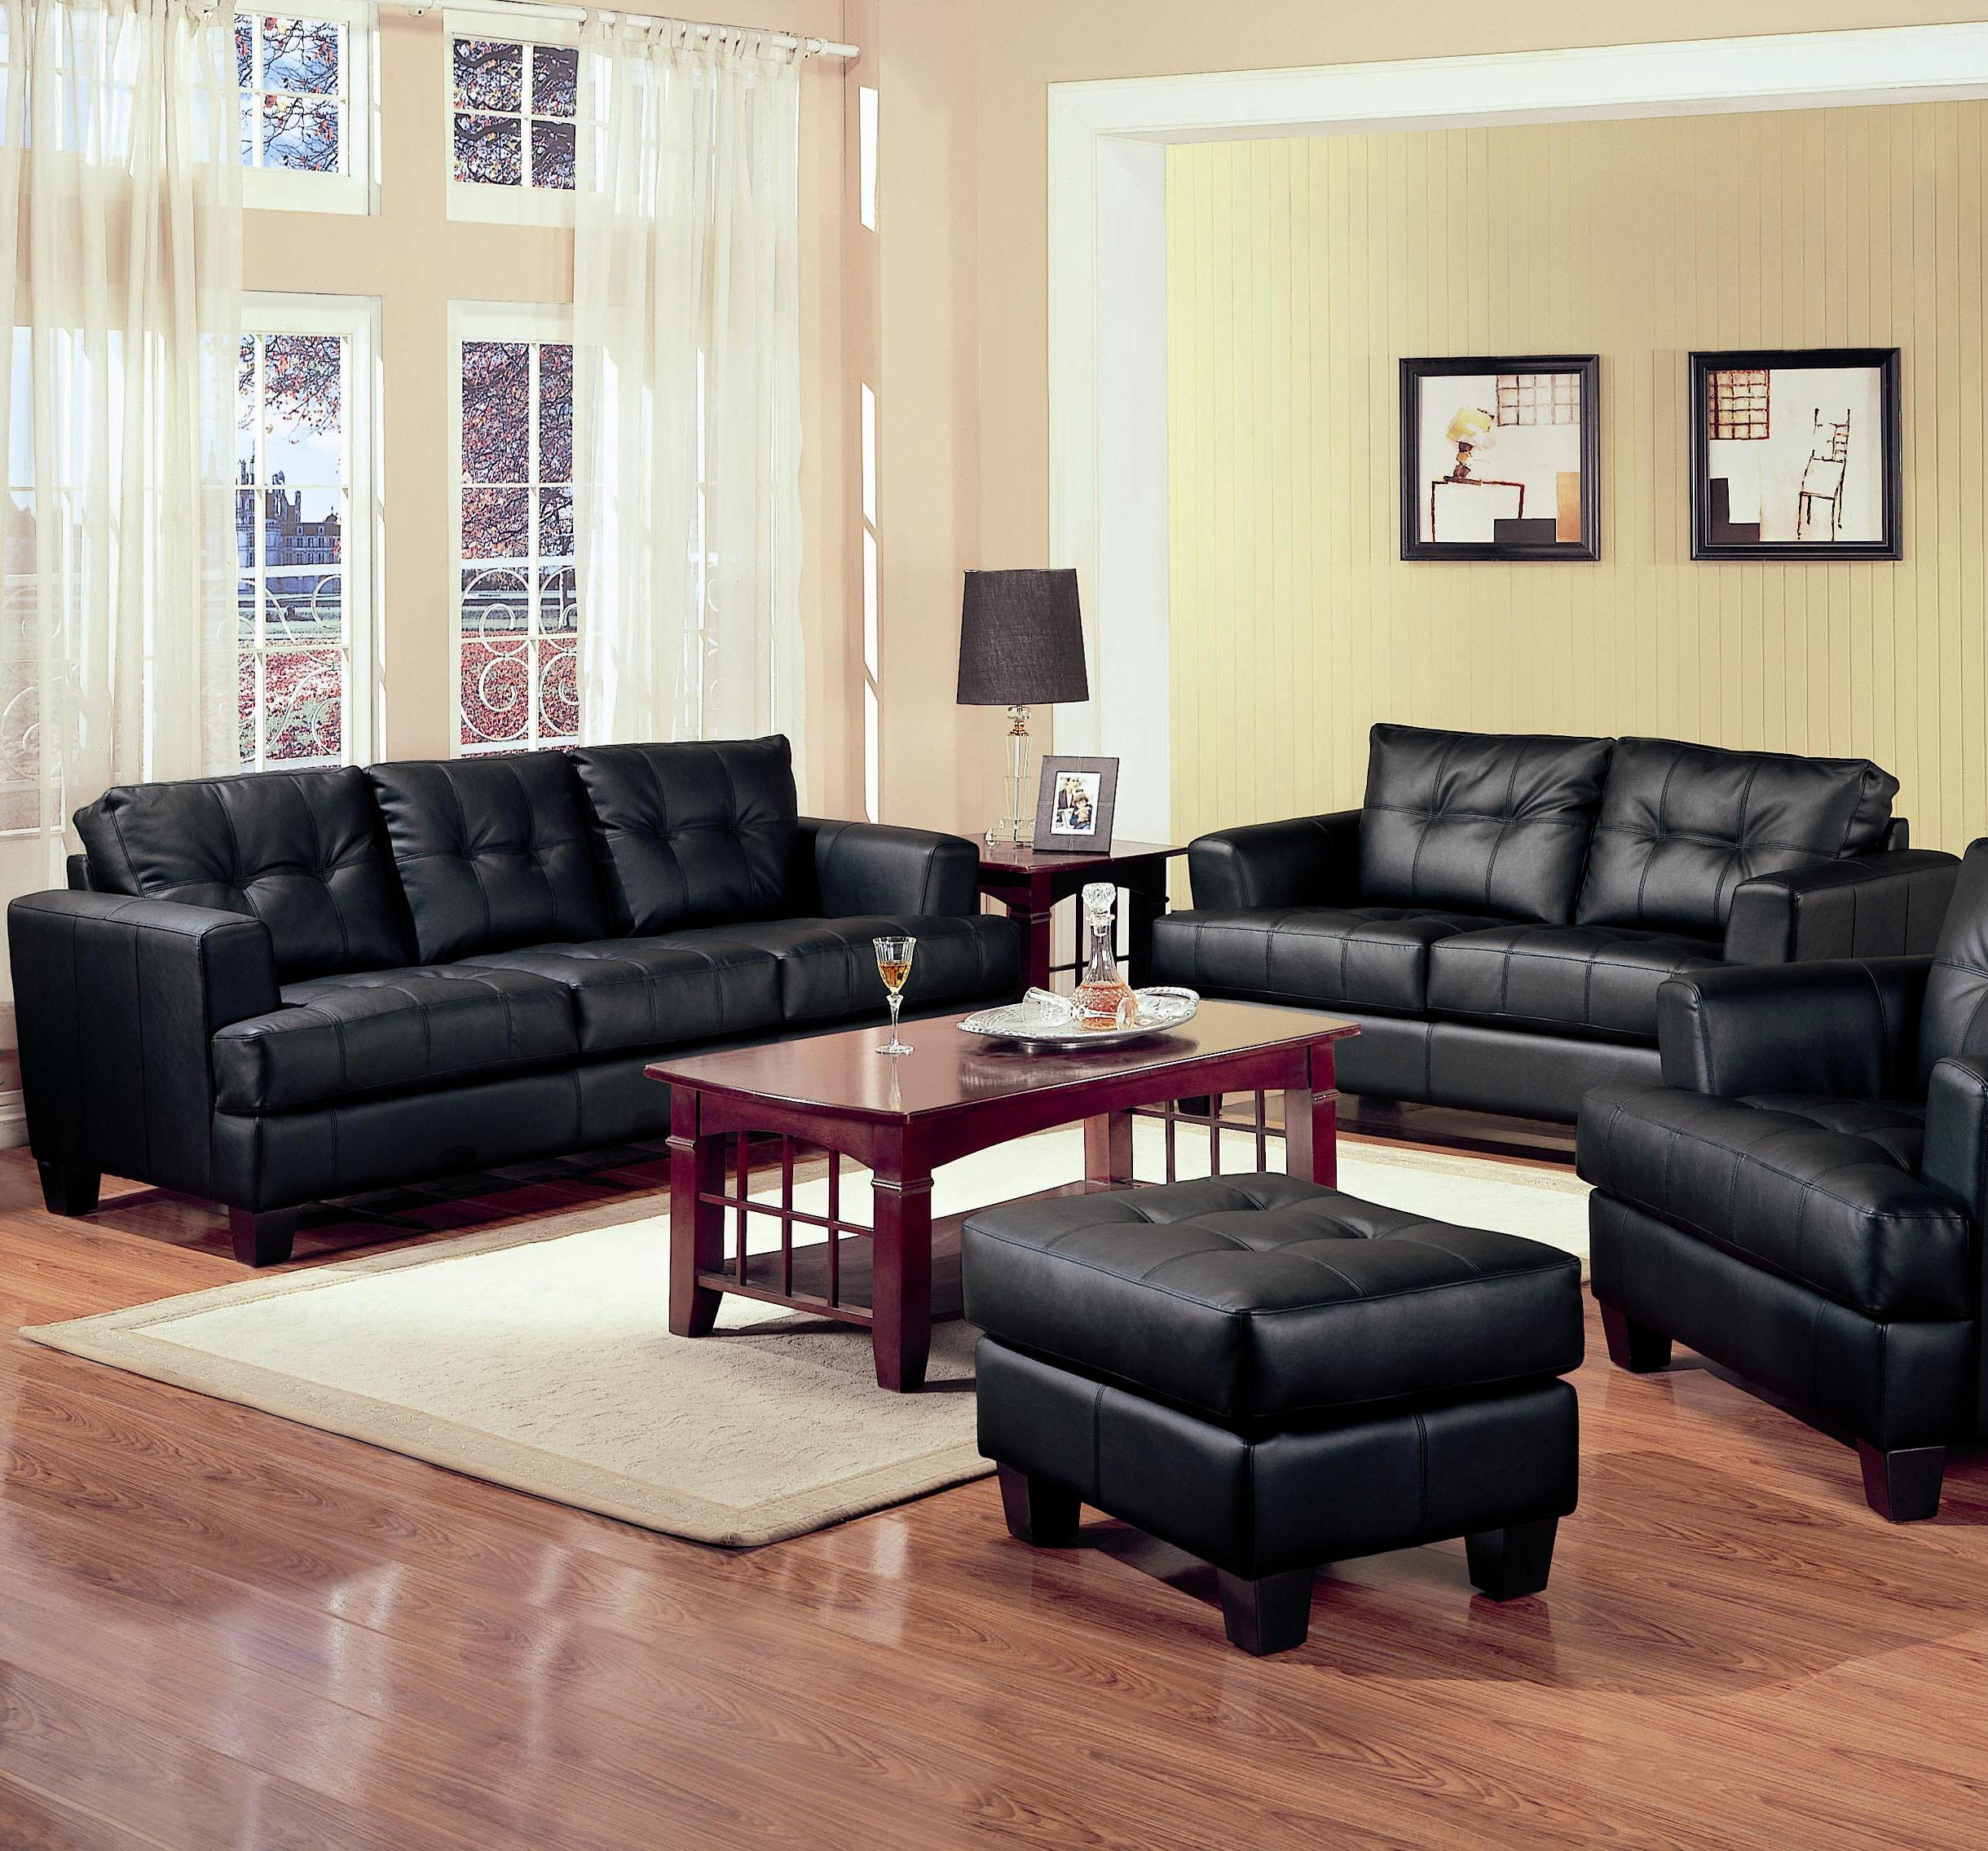 set sofa july furniture modern julson living sears friday deals dealssears room black on design ideas dealsdeals